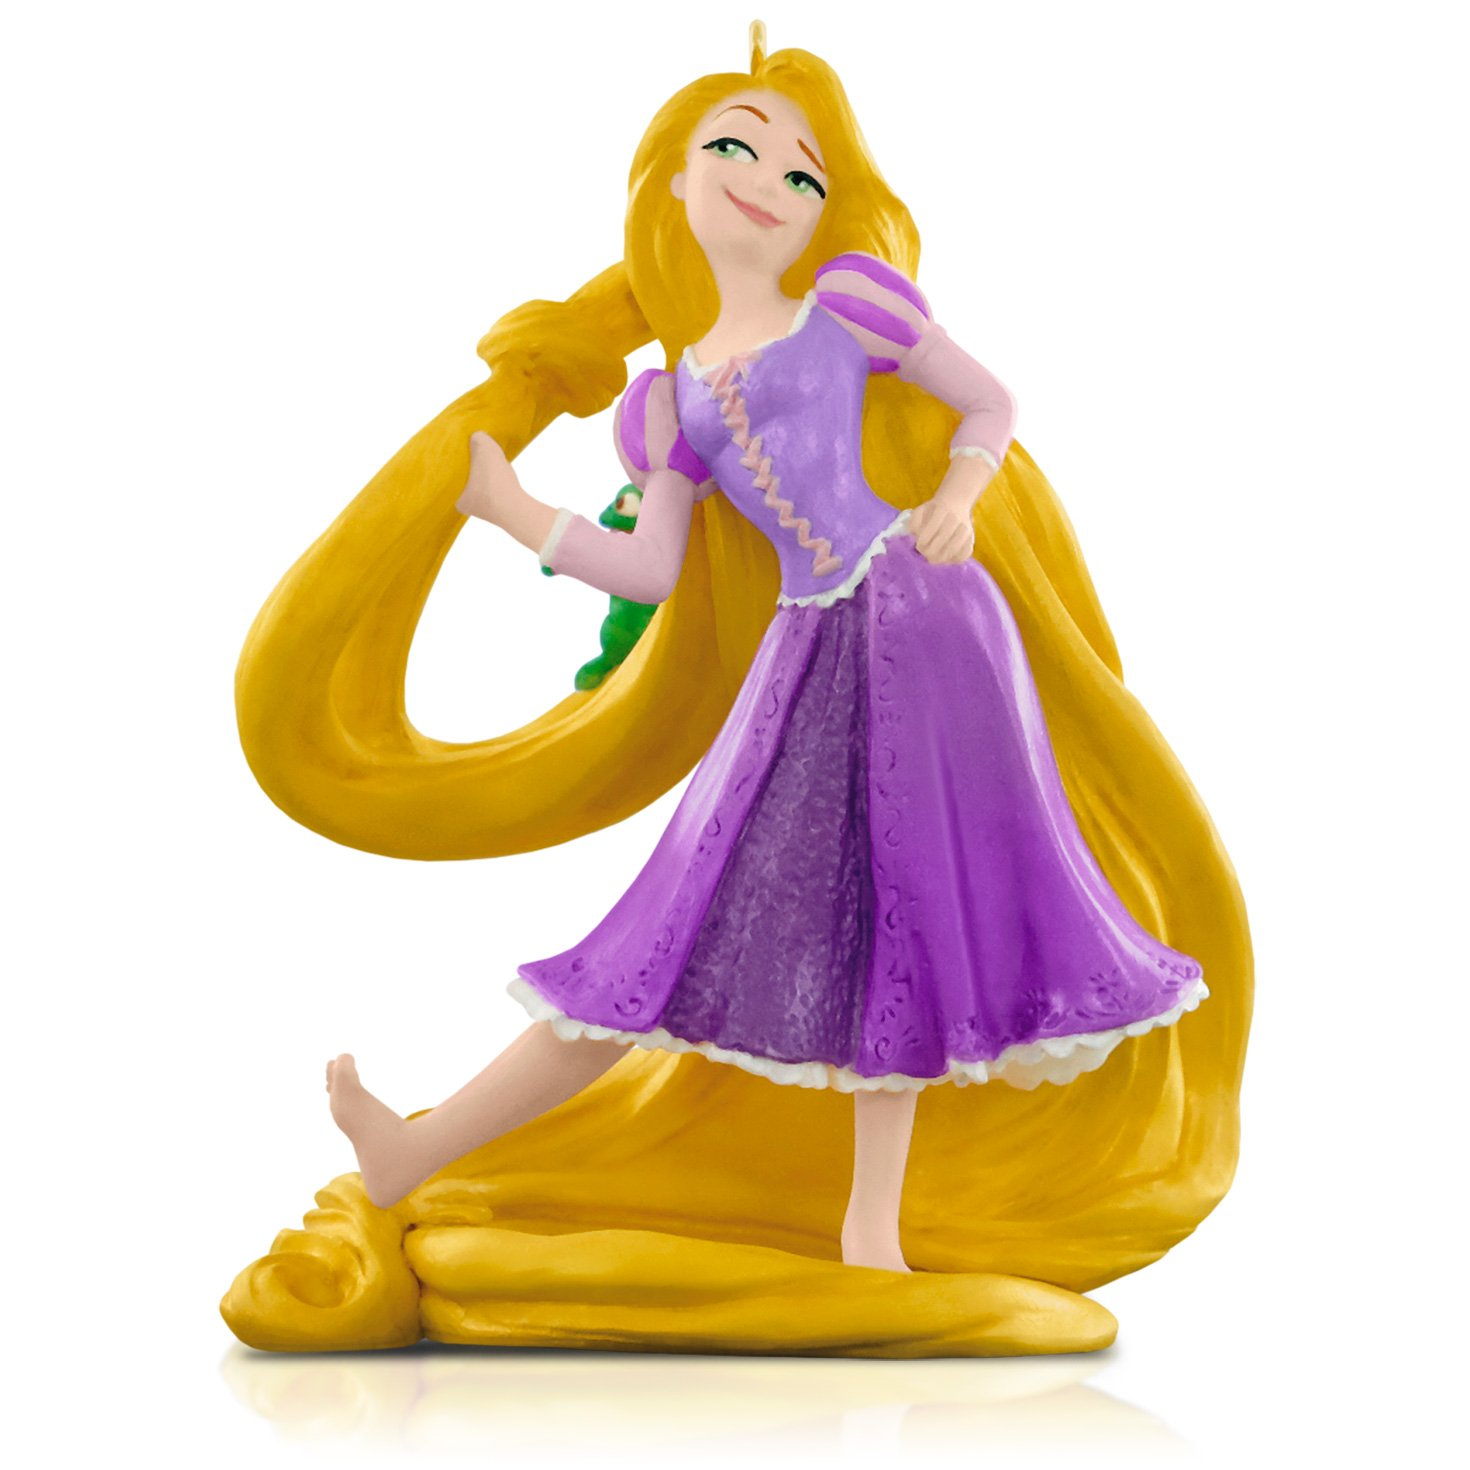 Hallmark Keepsake Ornament Disney Tangled Rapunzel and Pascal Hallmark Cards 1495QXD6077